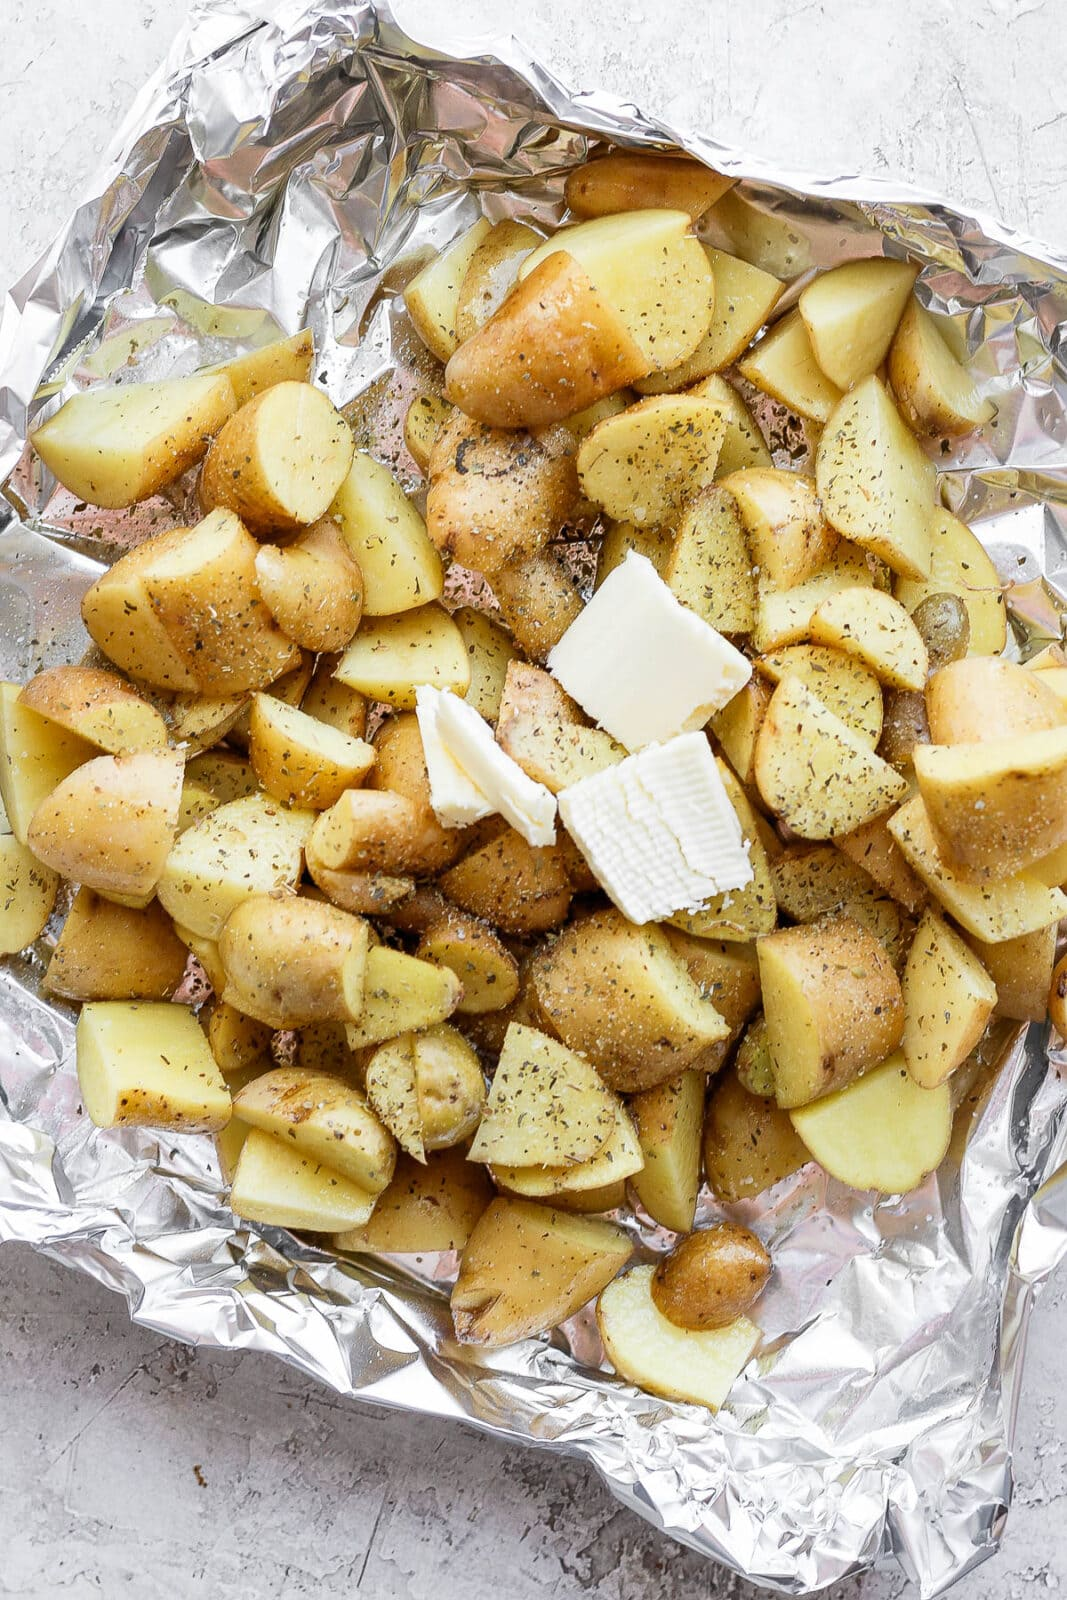 Seasoned potatoes in an aluminum foil boat with a dollop of butter on top.